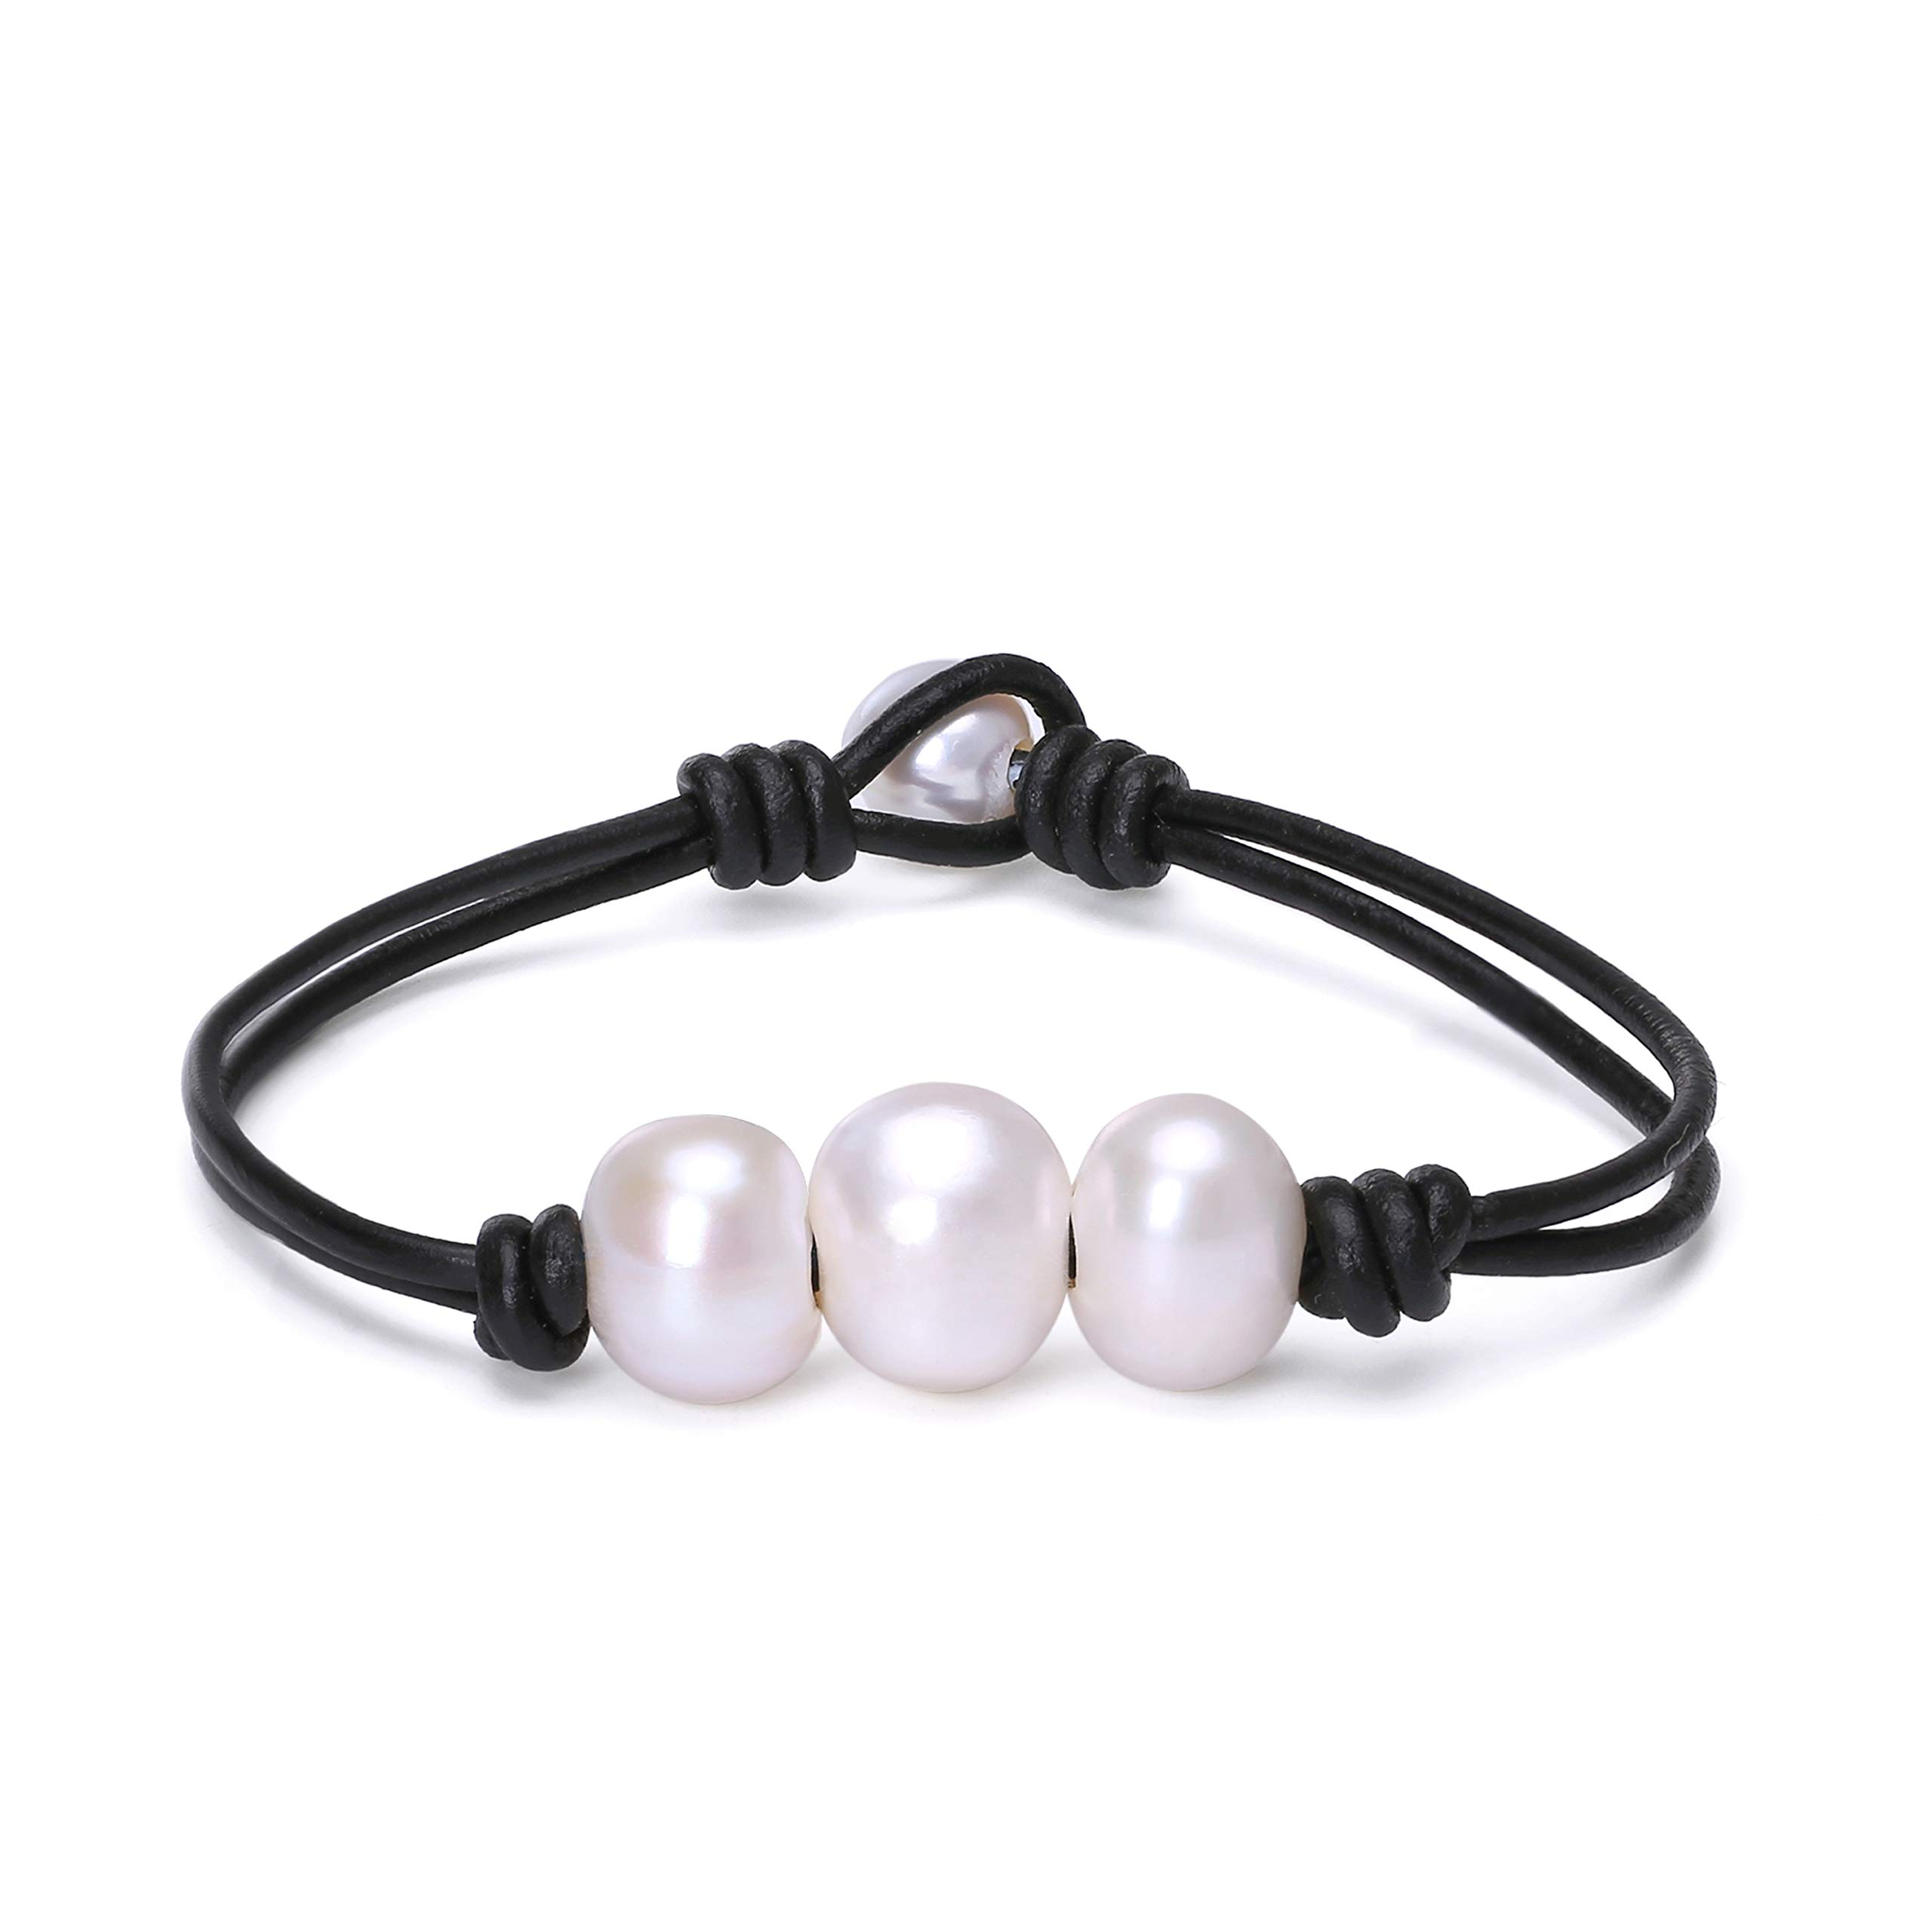 Fashion Braided Leather Knotted Bracelet Handmade Pearls Jewelry for Lady Black 7.5''